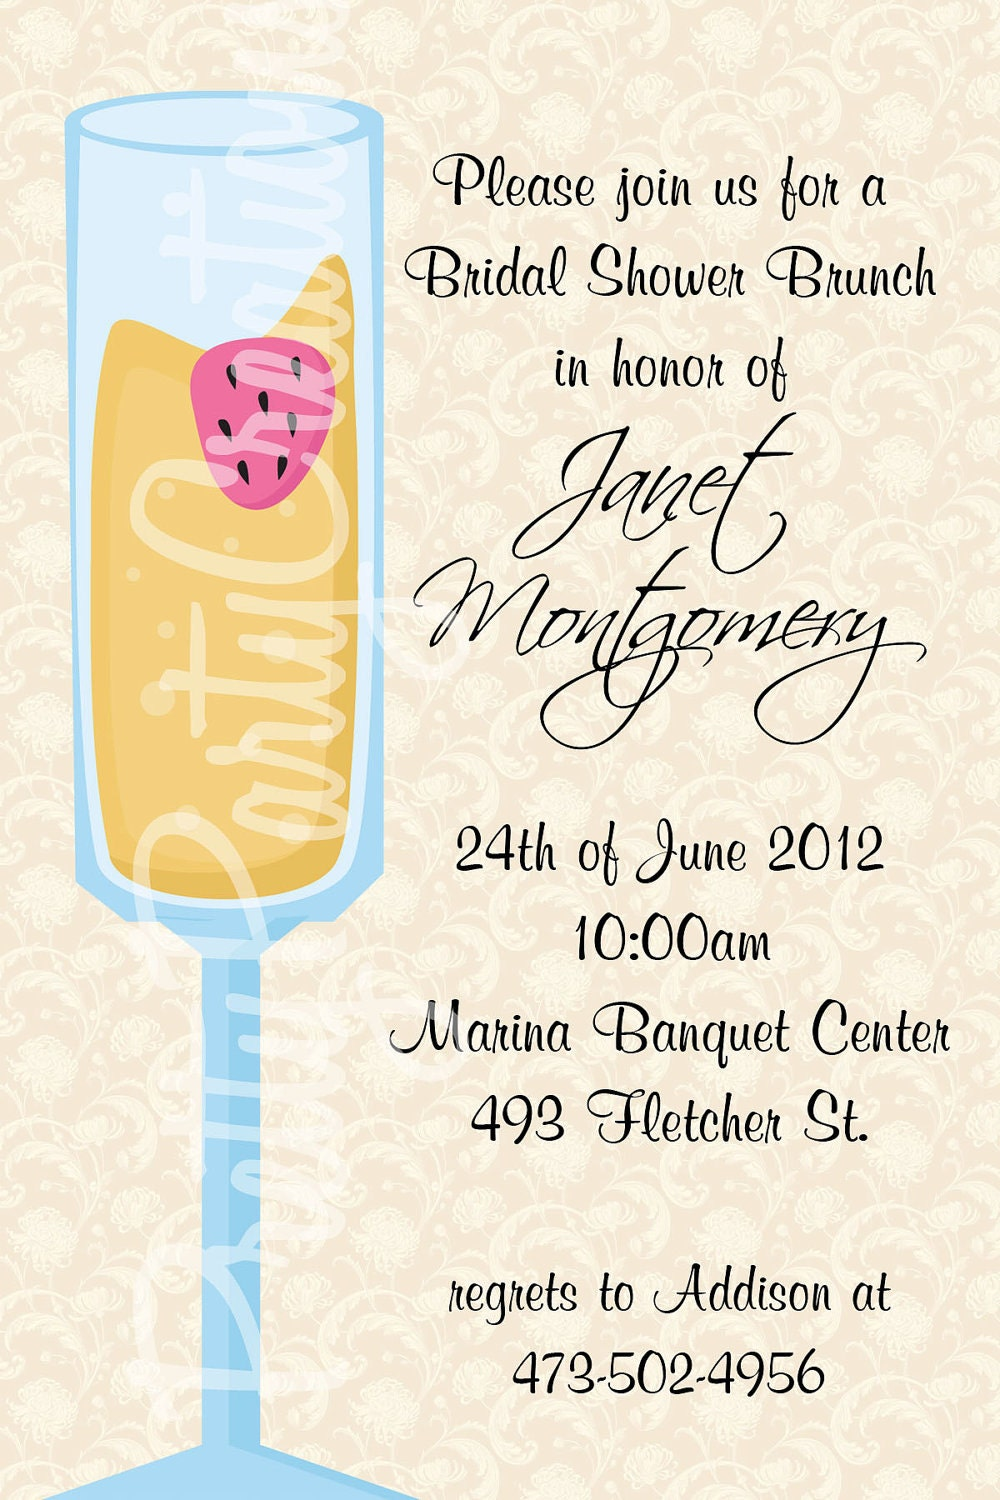 MIMOSA bridal shower brunch invitation by PrettyPartyCreations